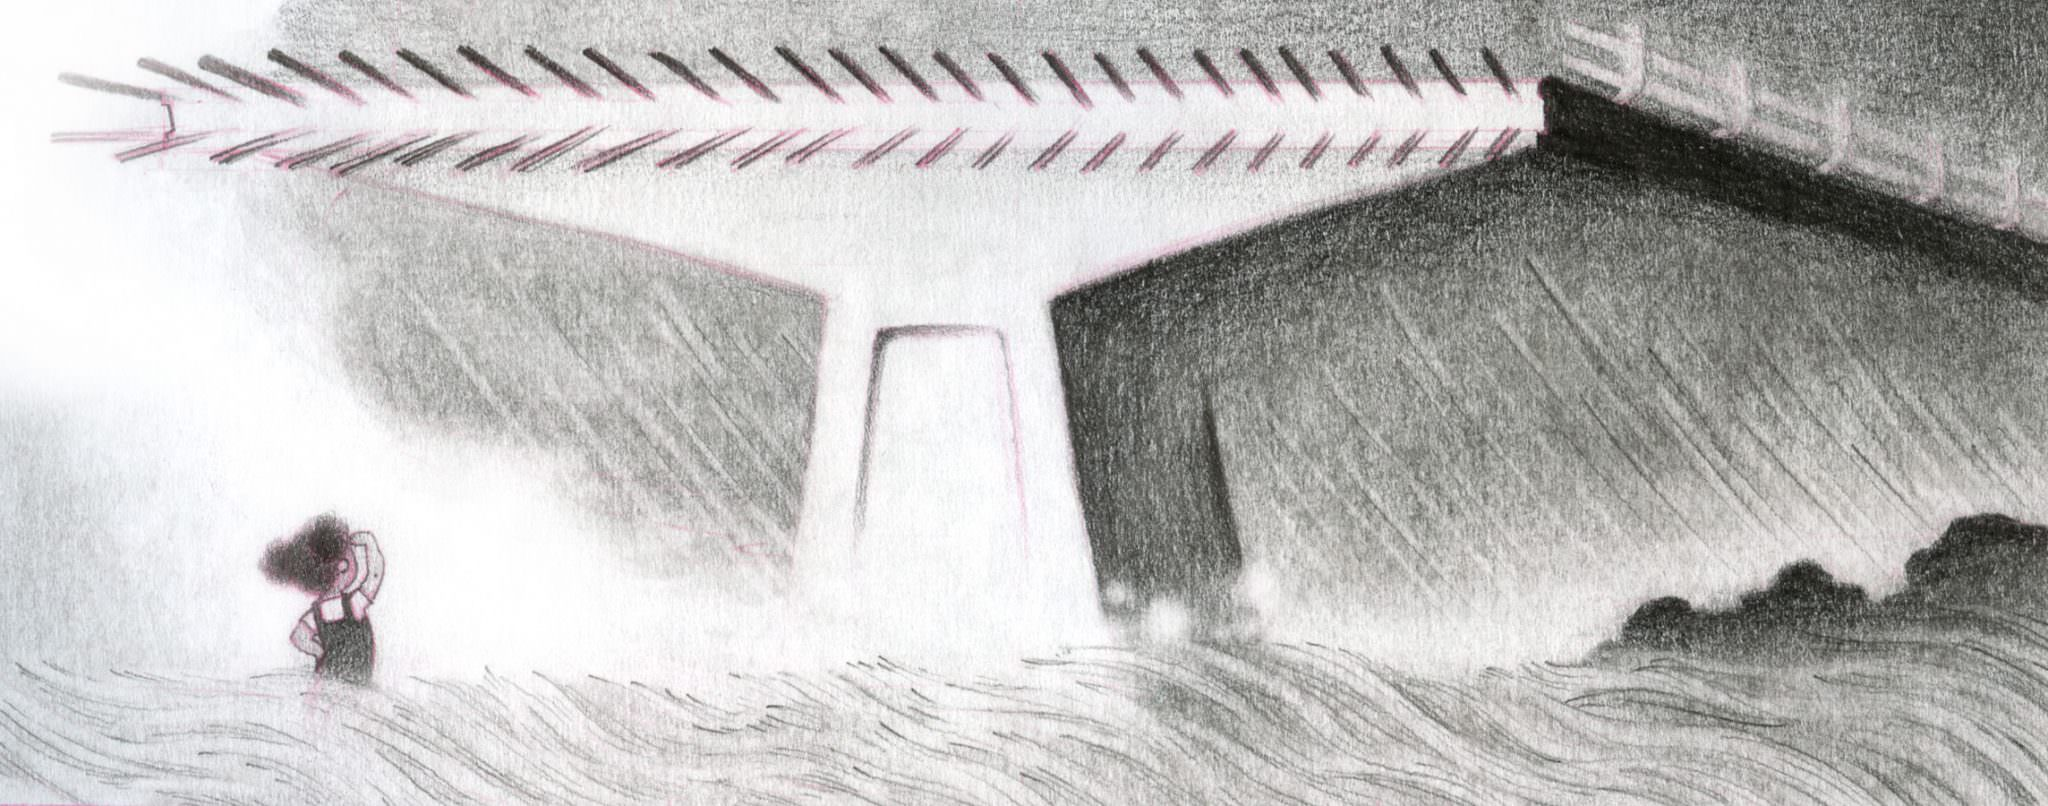 Illustration: a small girl looks up at an unfinished highway overpass, metal rebar extending into the open sky.